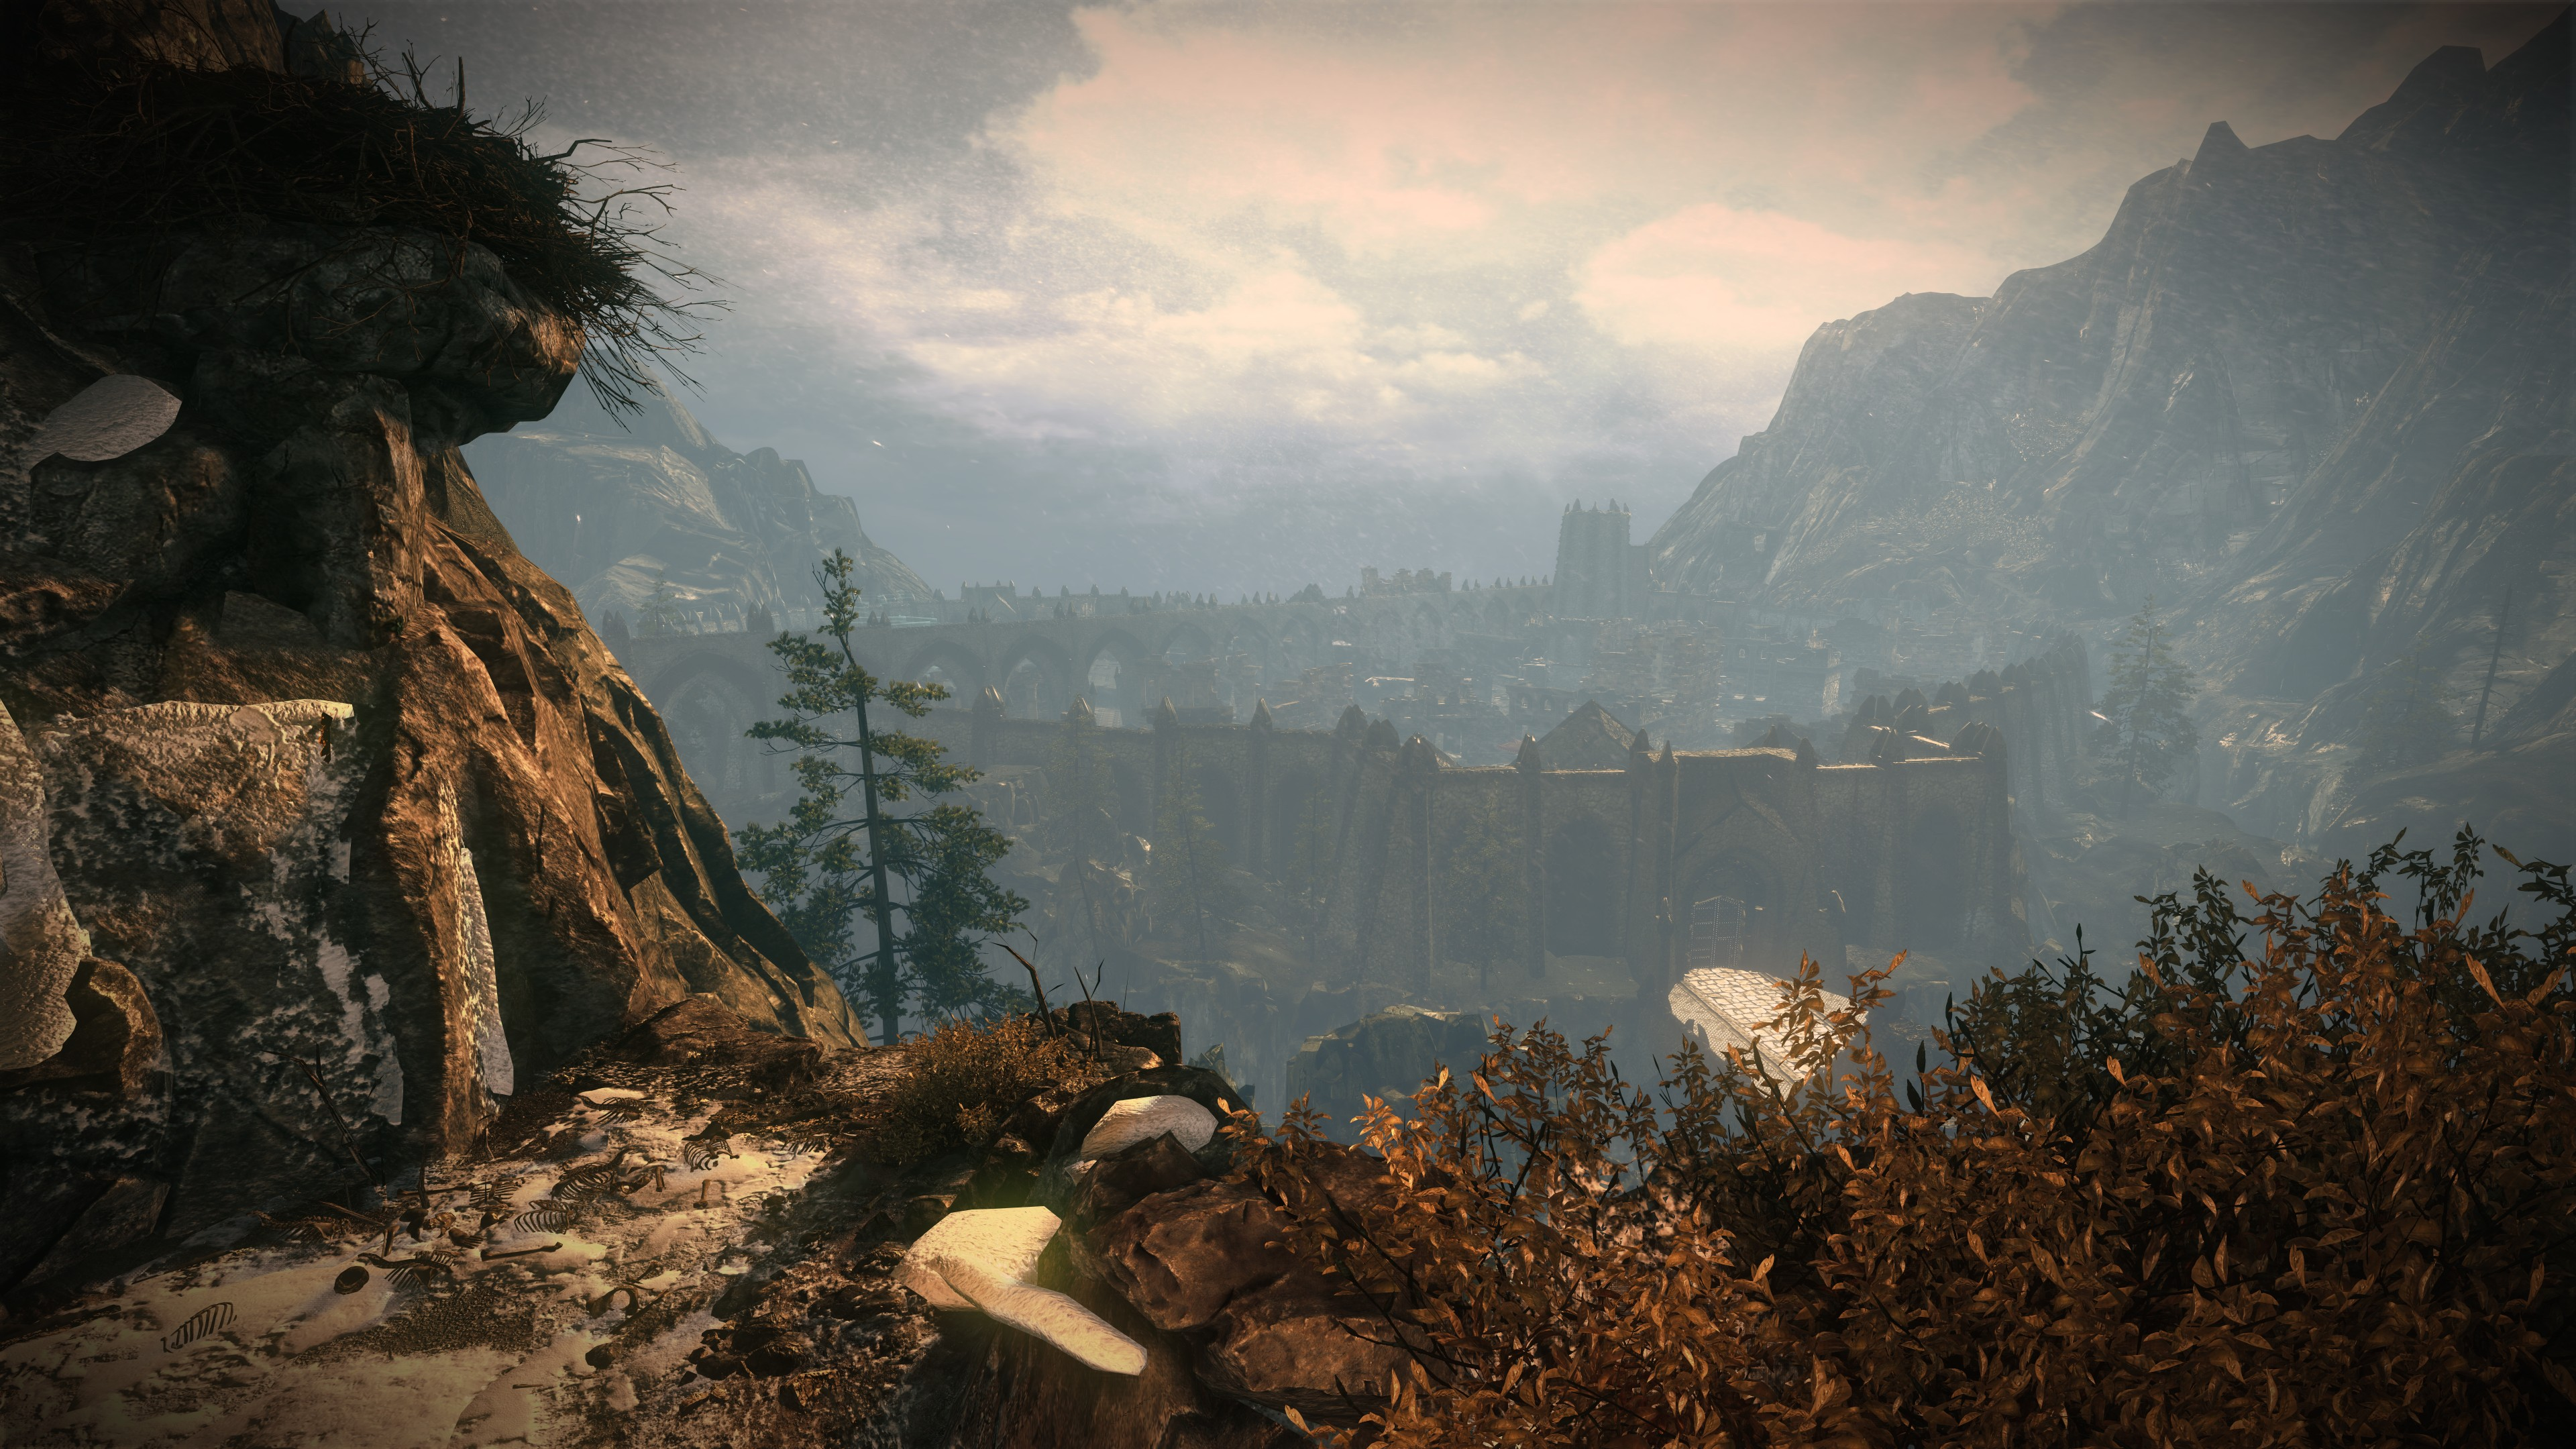 The witcher 3 nackt szene nackt streaming